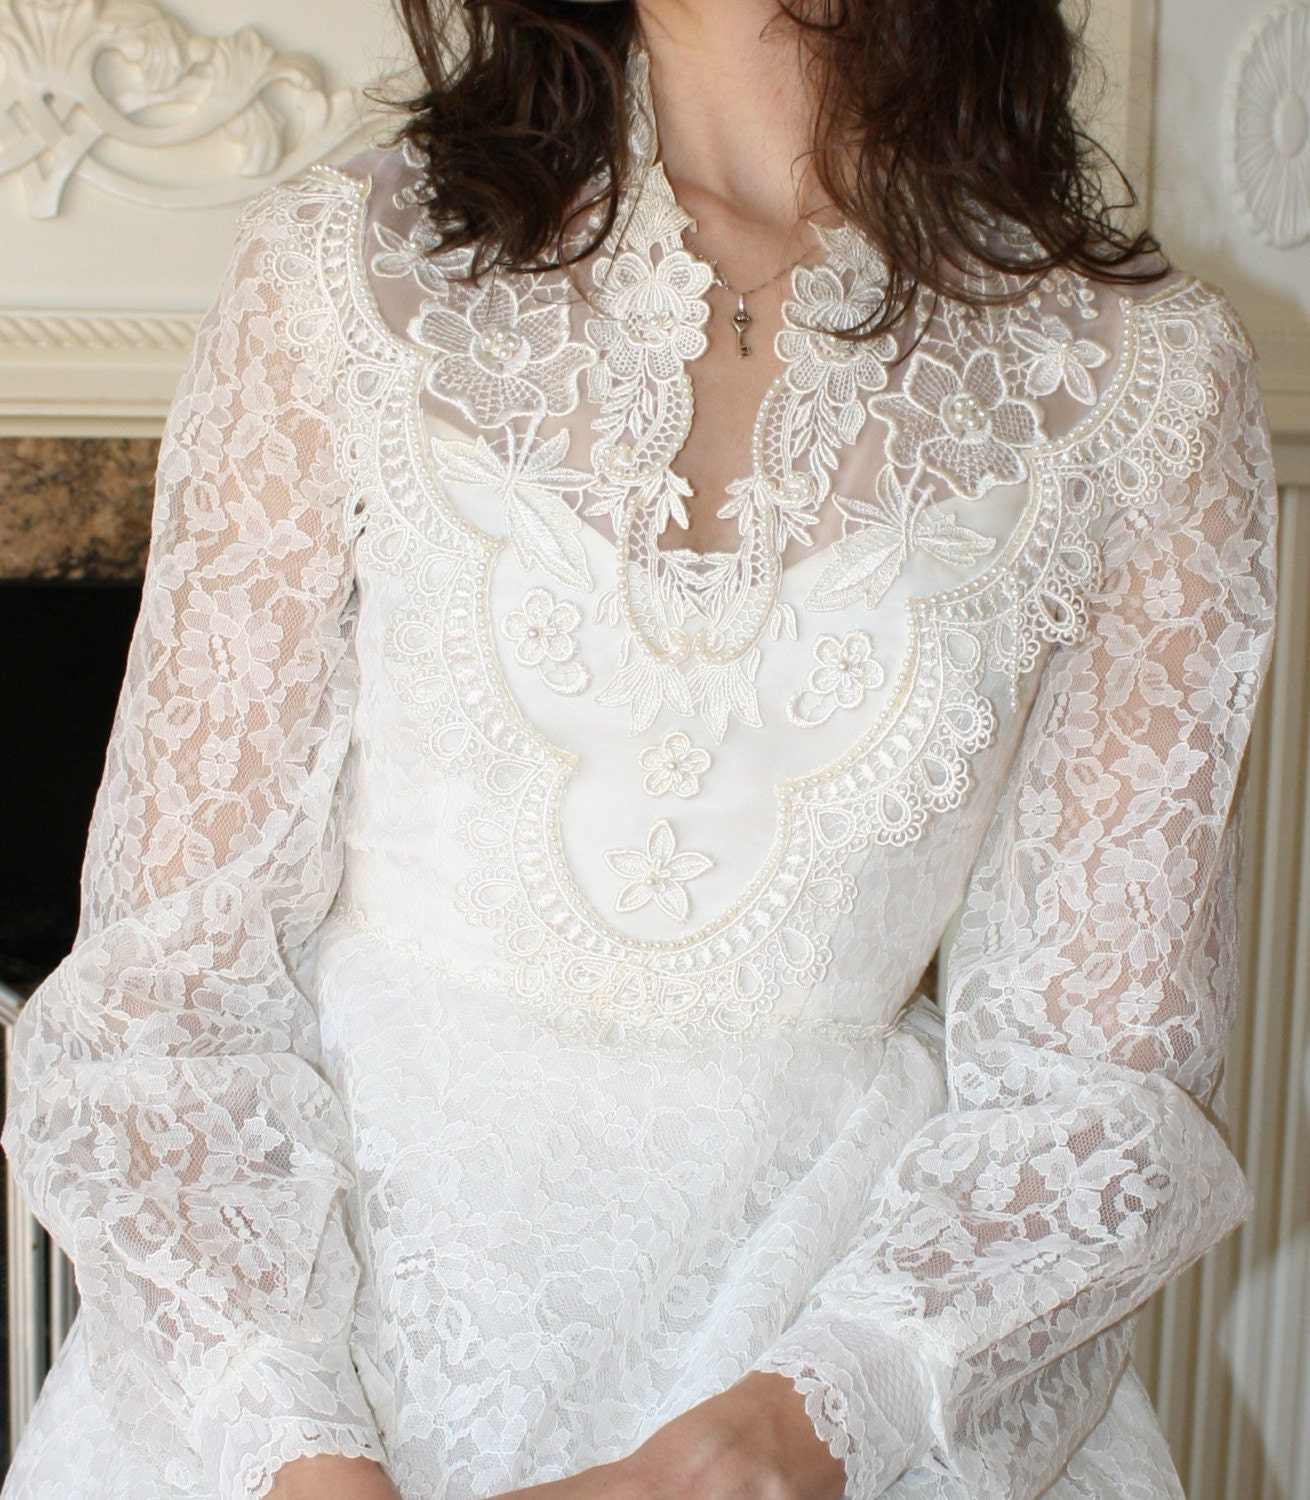 Vintage wedding dress gown PEARL white LACE Long sleeve flower